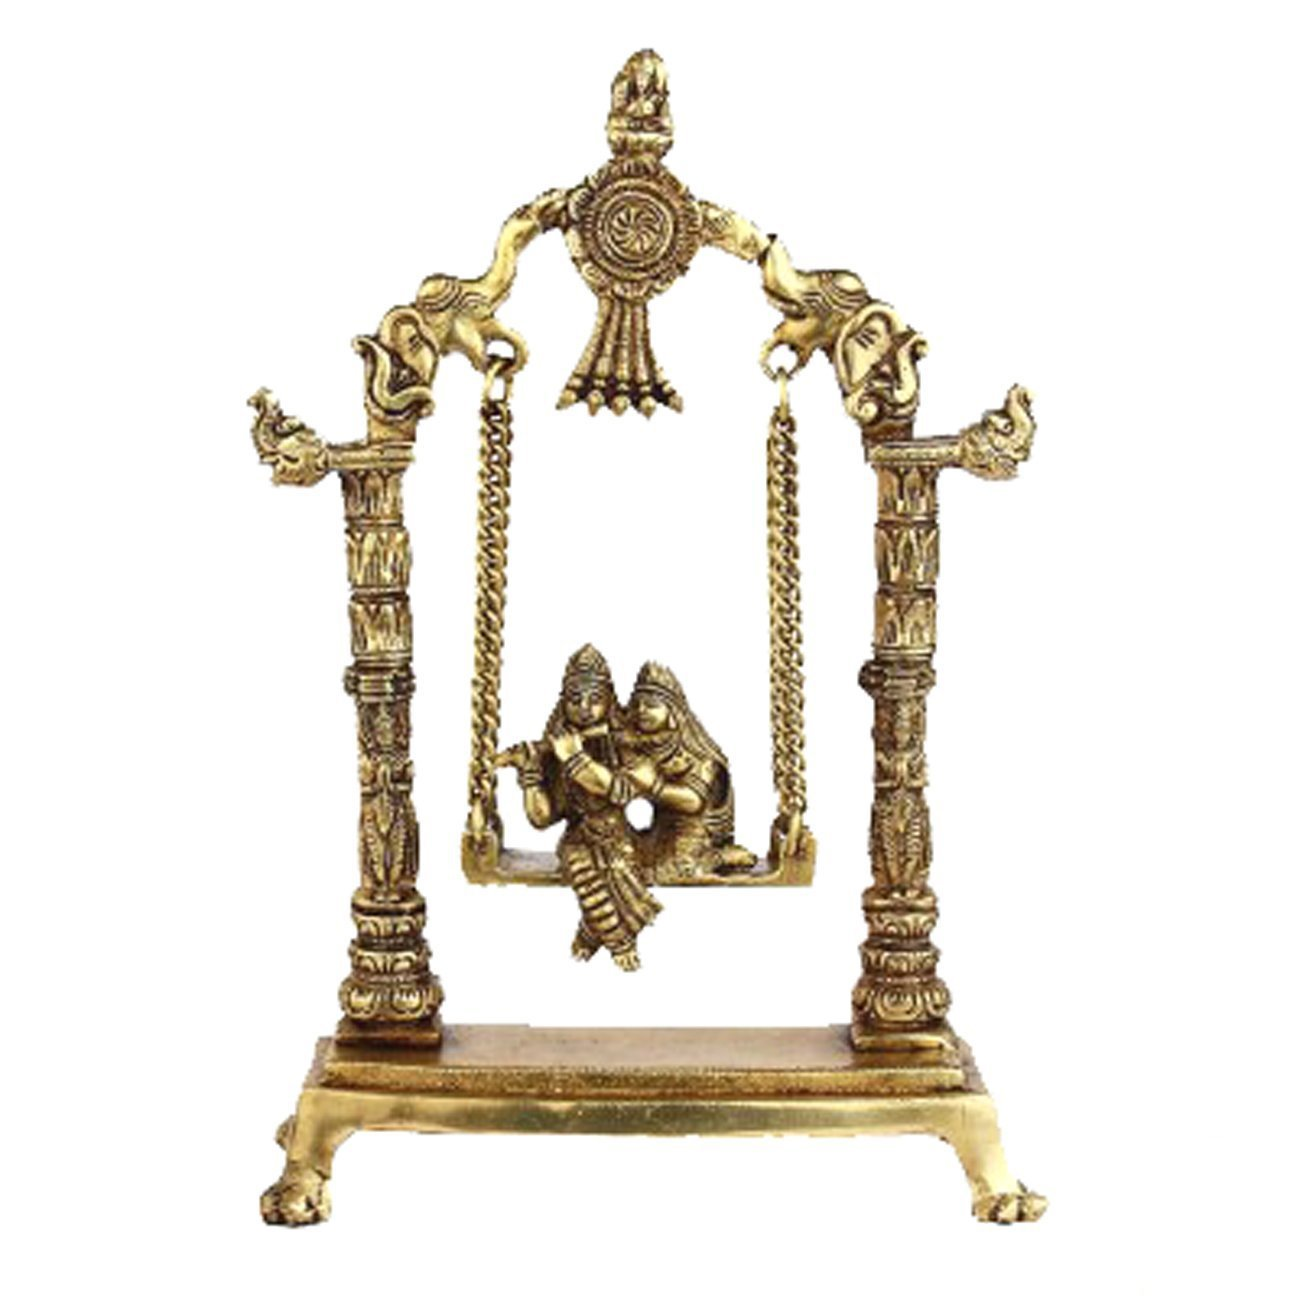 Idol Collections Radha Krishna Sitting On A Swing Brass Statue Golden